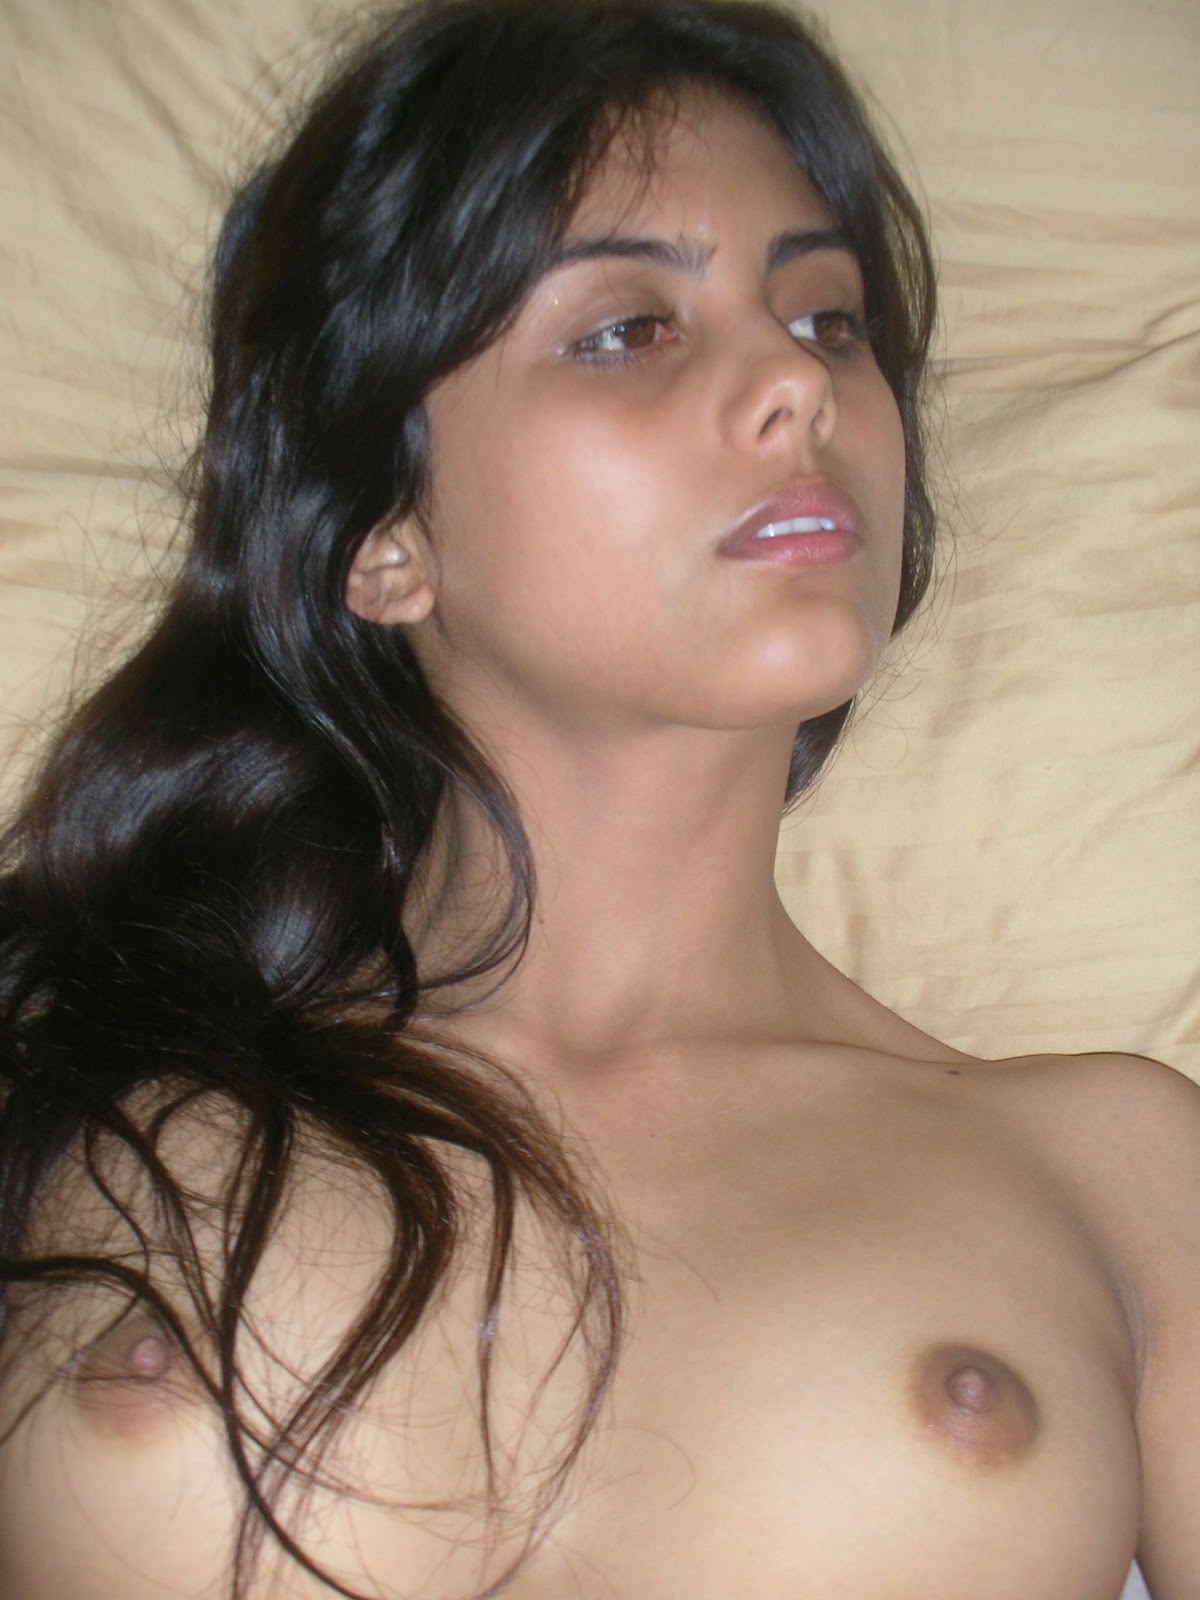 19 year old filipina girl getting naked and her boobs sucked 6